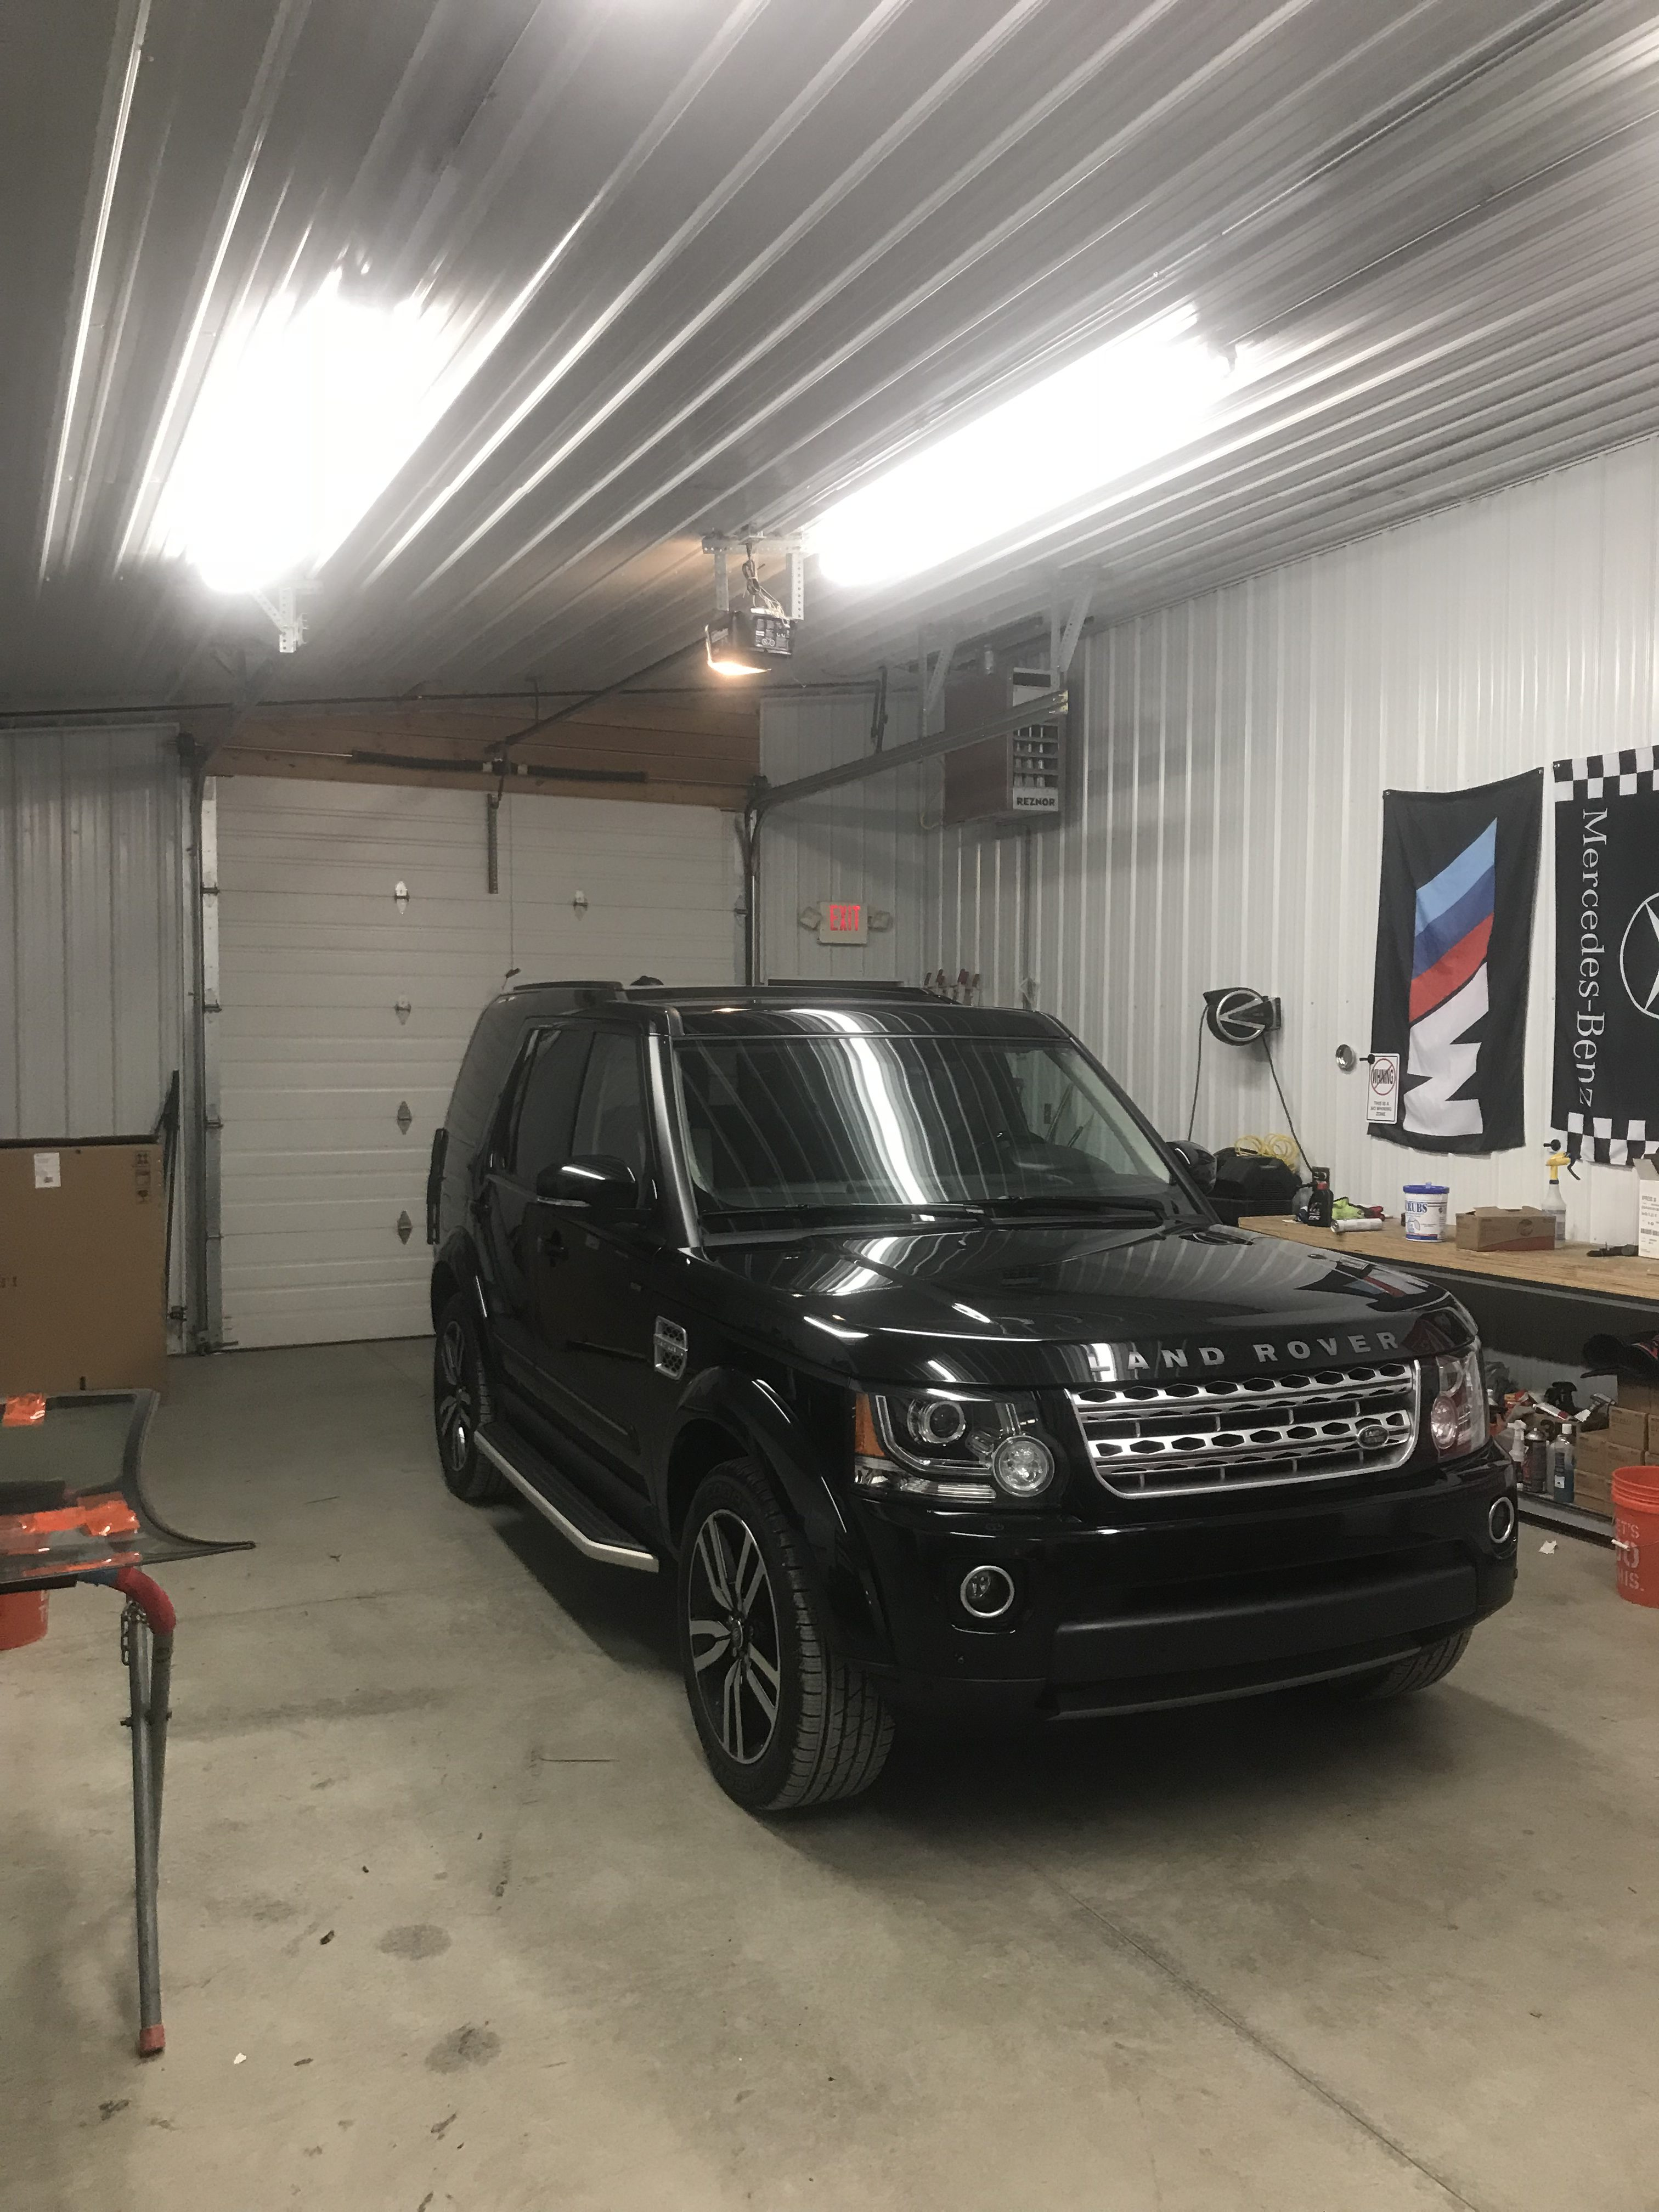 Land Rover Lr4 Windshield Replacement Xtreme Autoglass